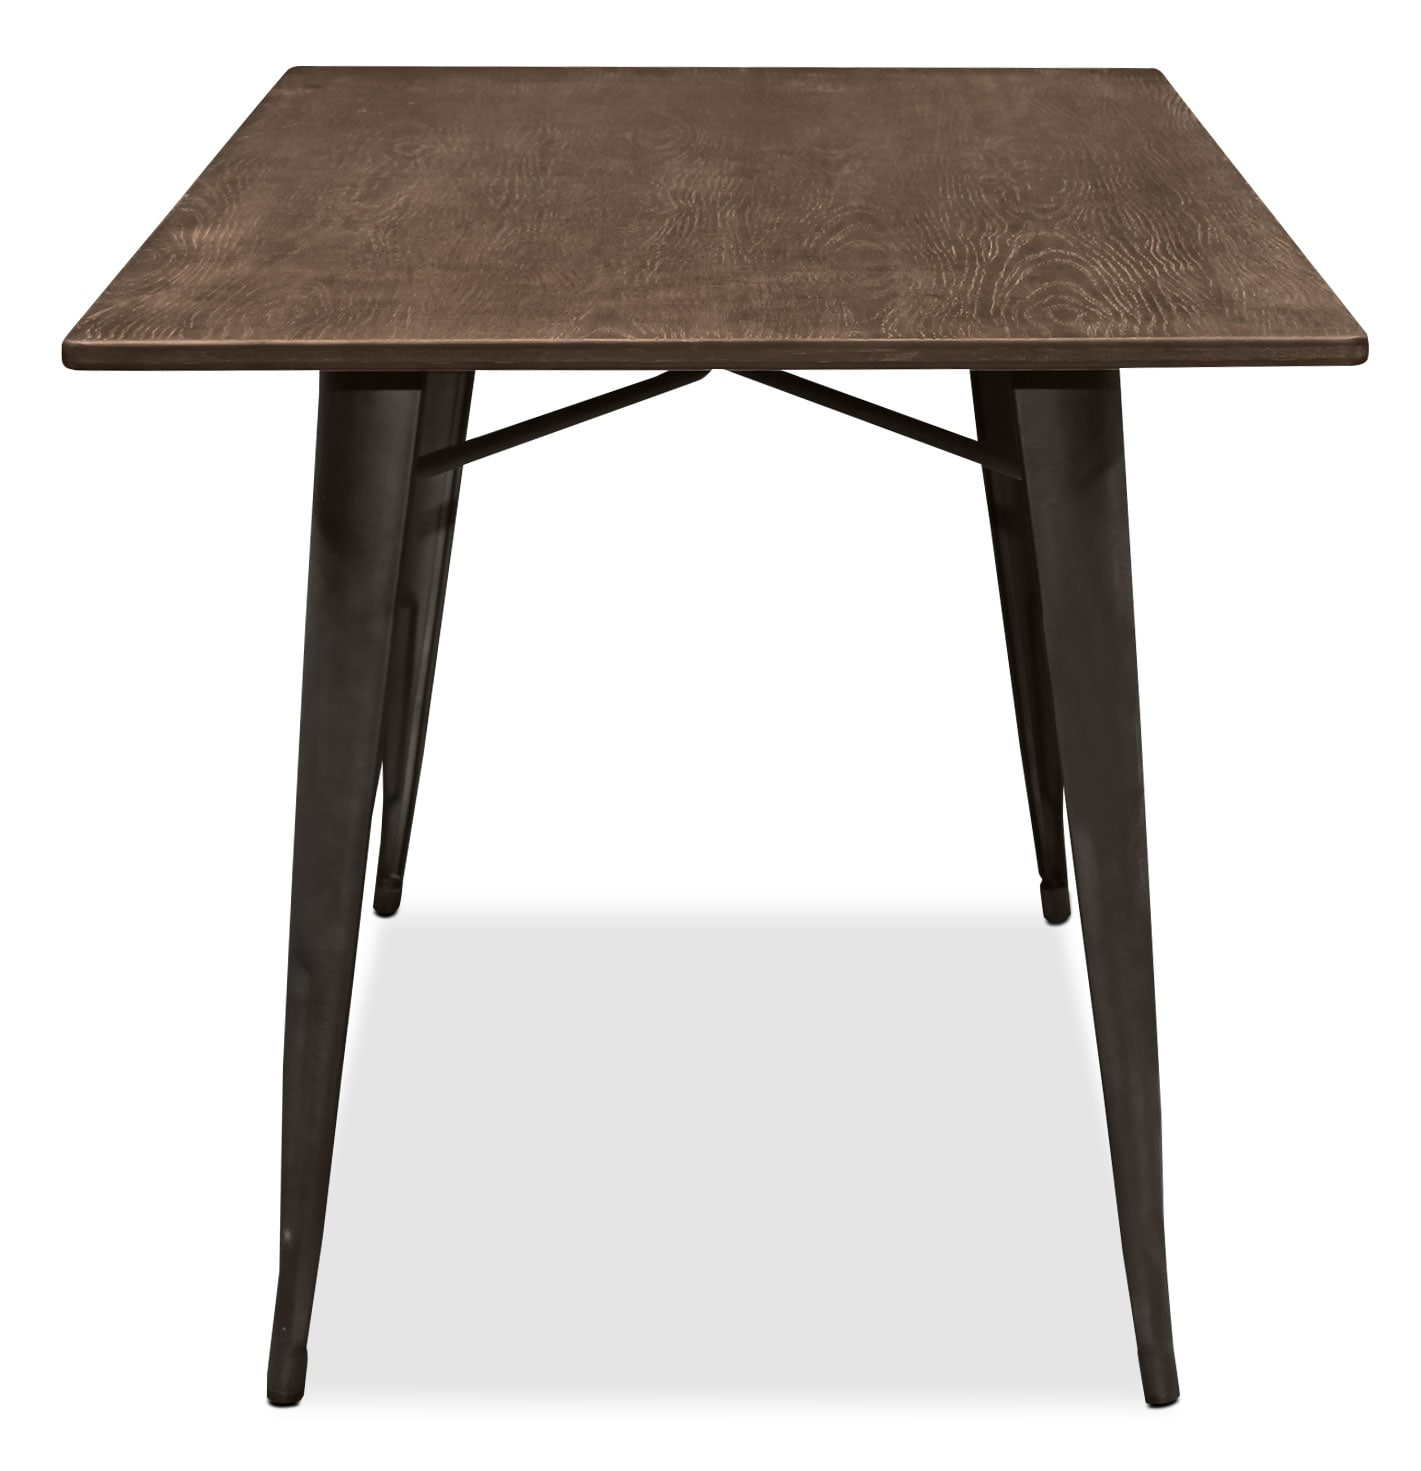 28 dining tables the brick peyton dalton oak dining for The brick kitchen tables